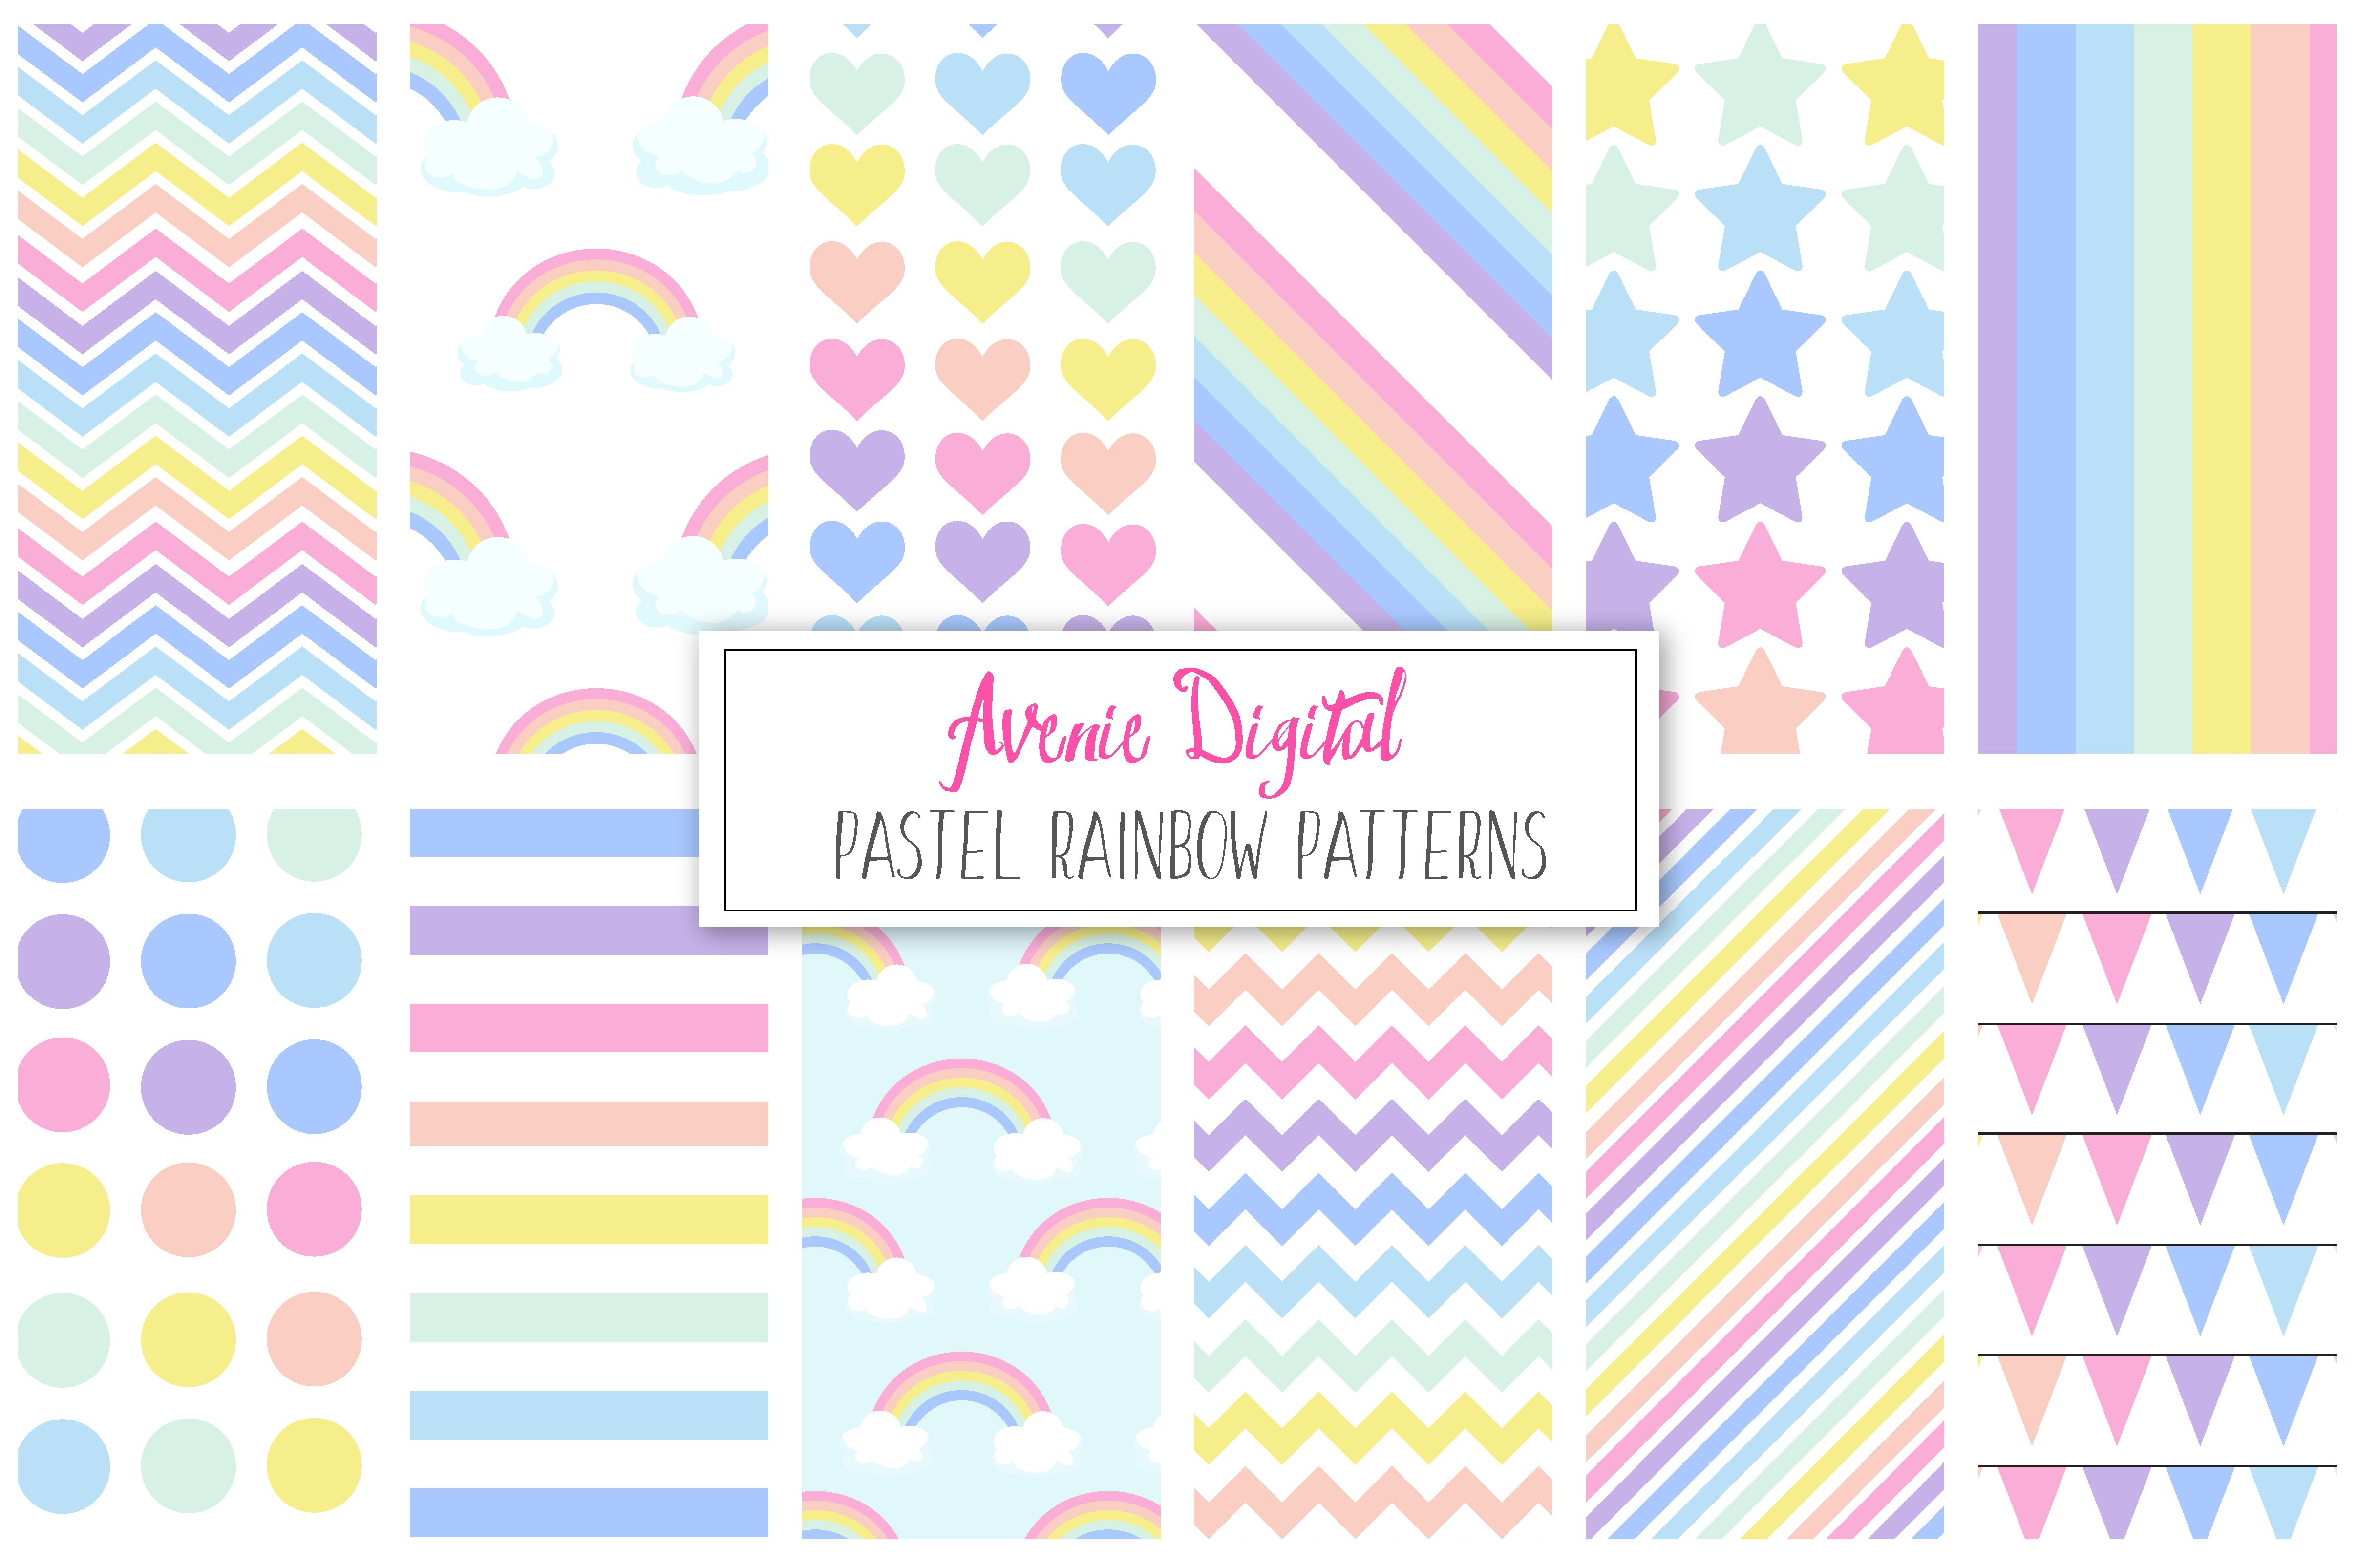 Pattern Paper Awesome Inspiration Design